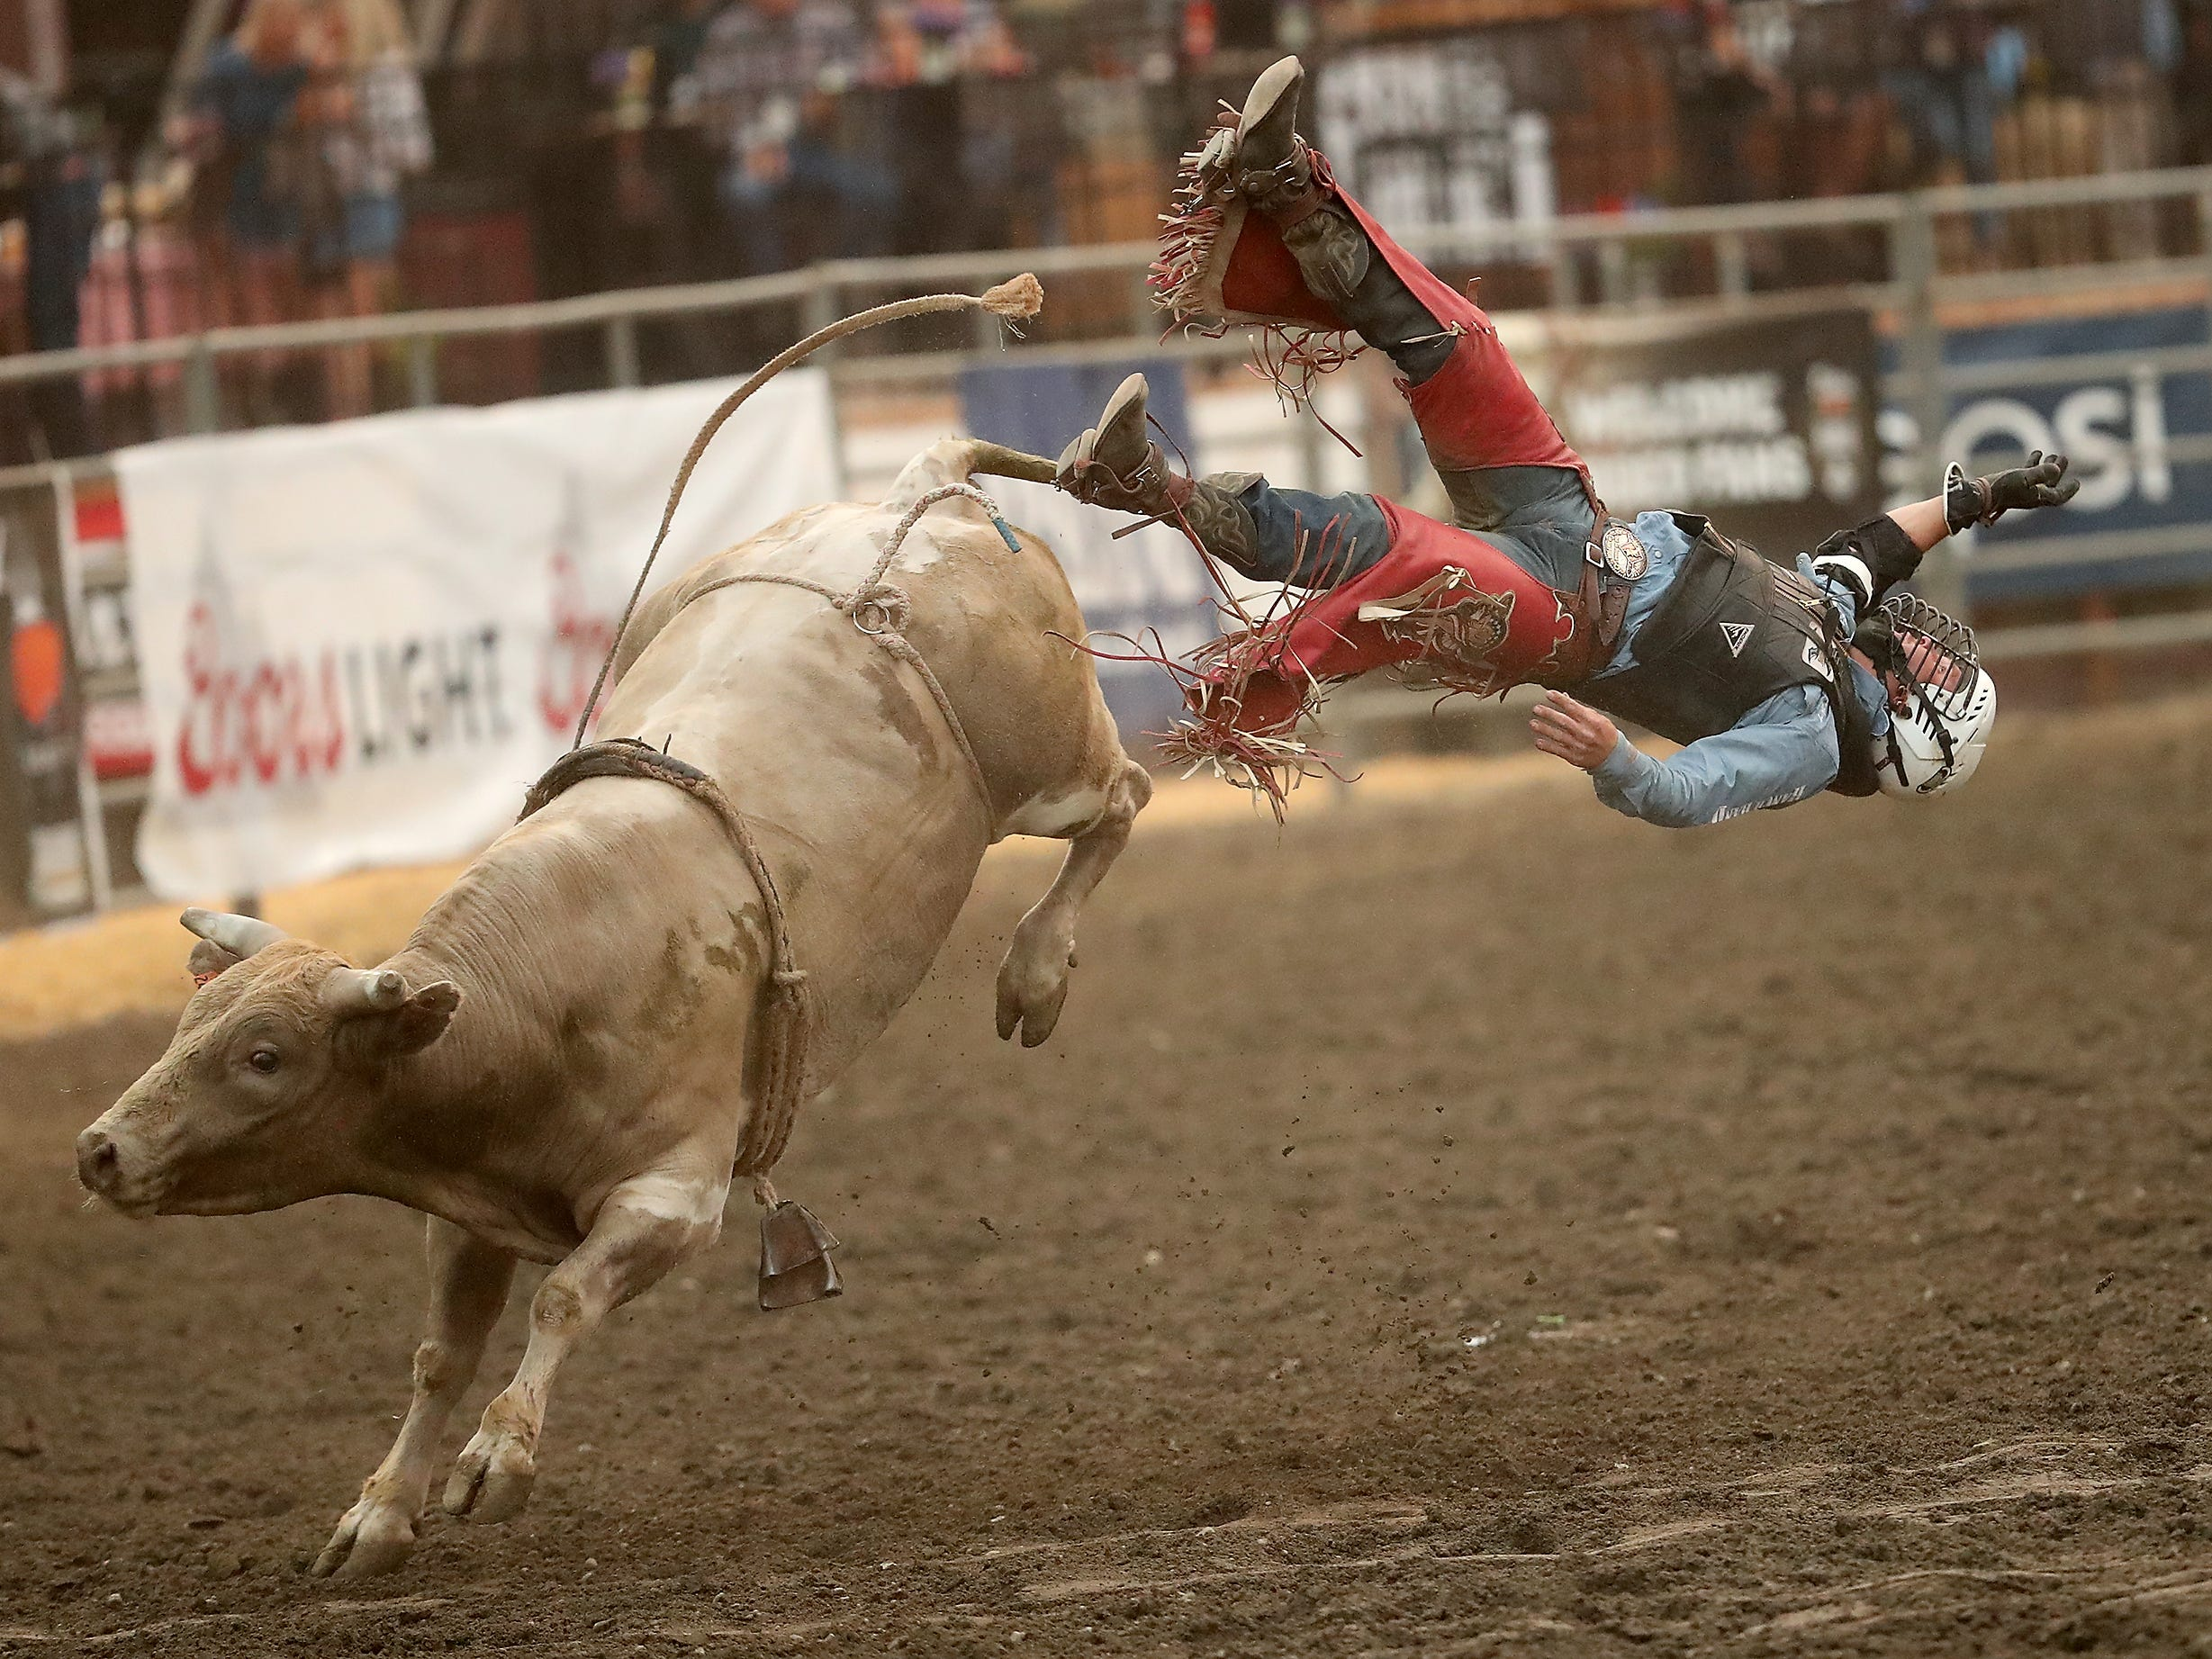 Bull rider Trey Benton III, of Rock Island, Texas, soars through the air off the back of a bull named Single Wide during the PRCA Xtreme Bulls at the Kitsap County Fair & Stampede in Silverdale, Washington on Wednesday, August 22. 2018.